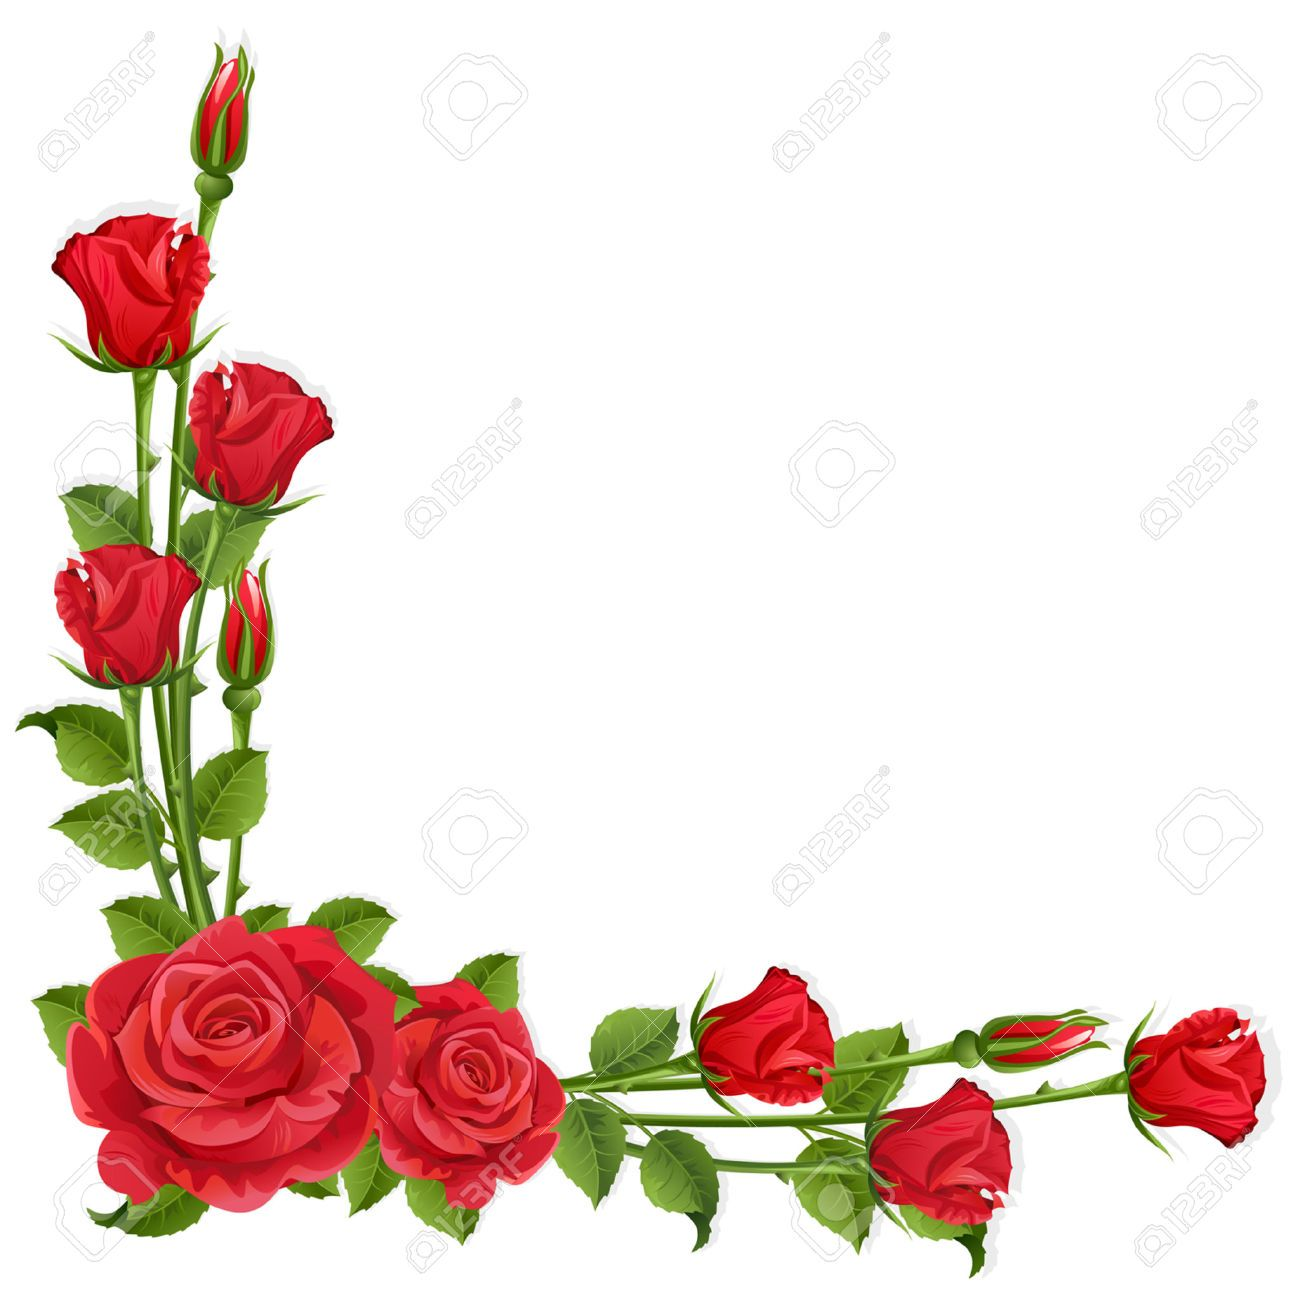 White Background With Red Roses Flower Border Clipart Red Roses Flower Border